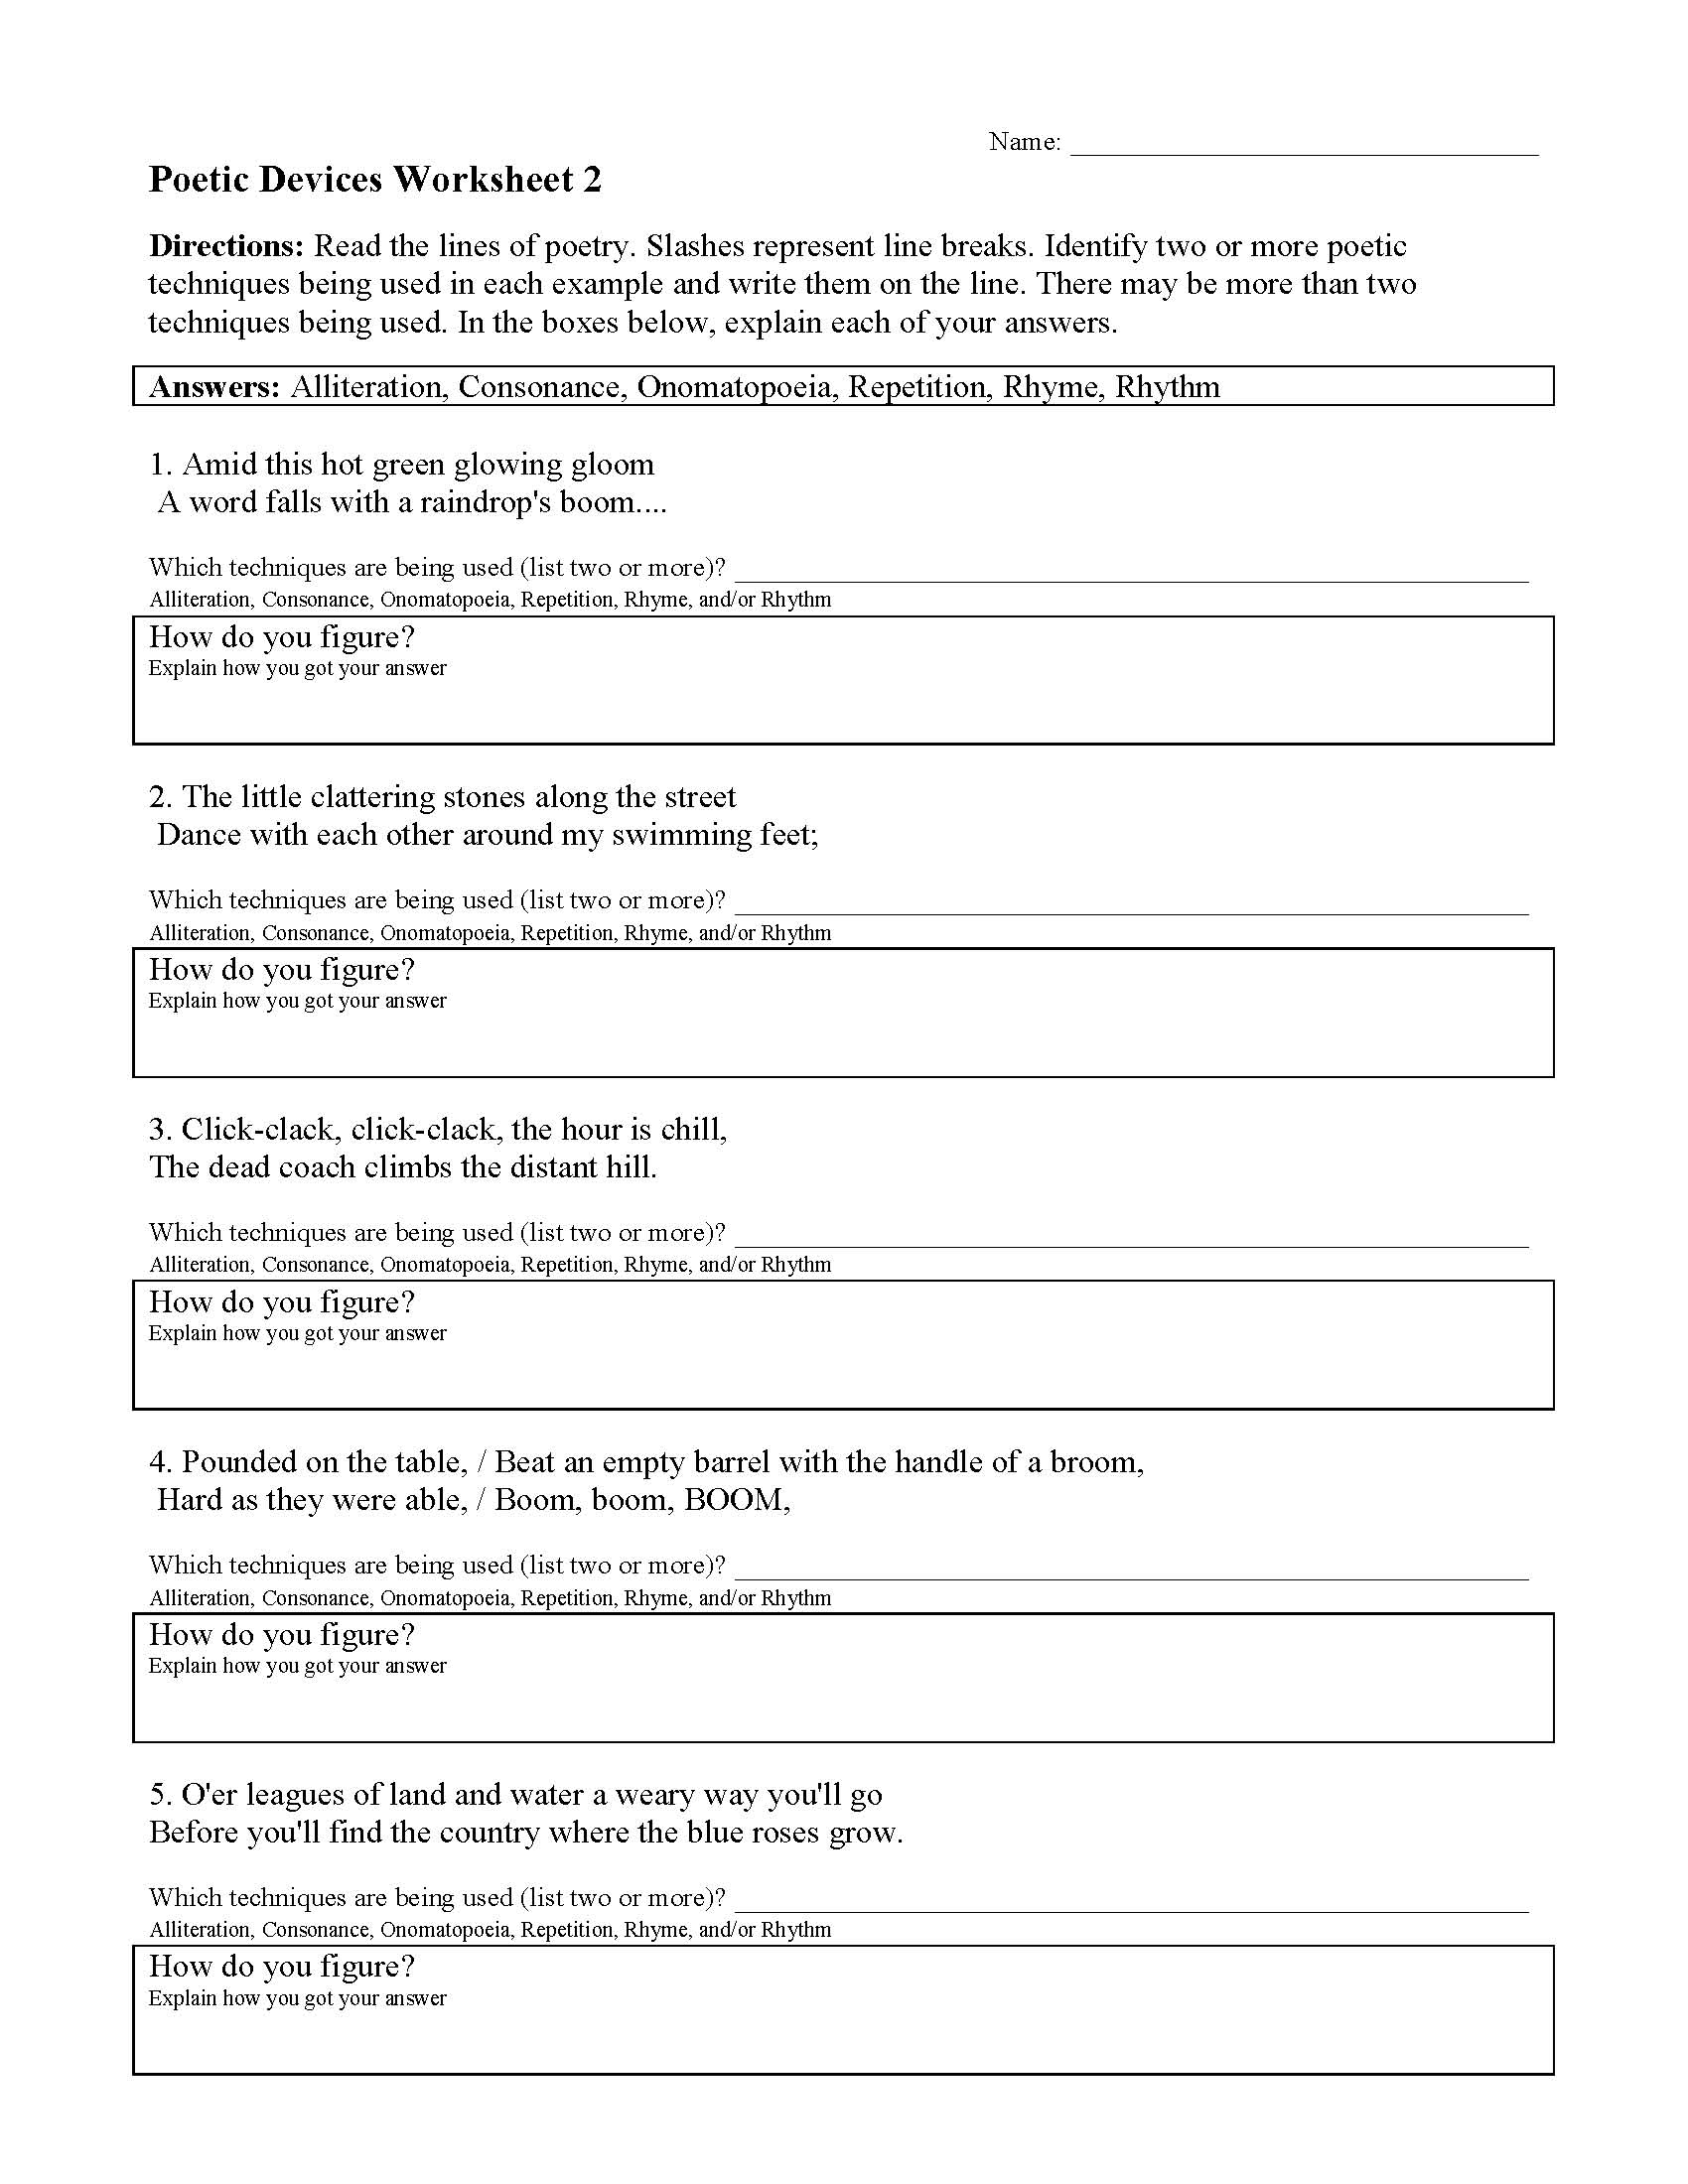 32 Sound Devices In Poetry Worksheet